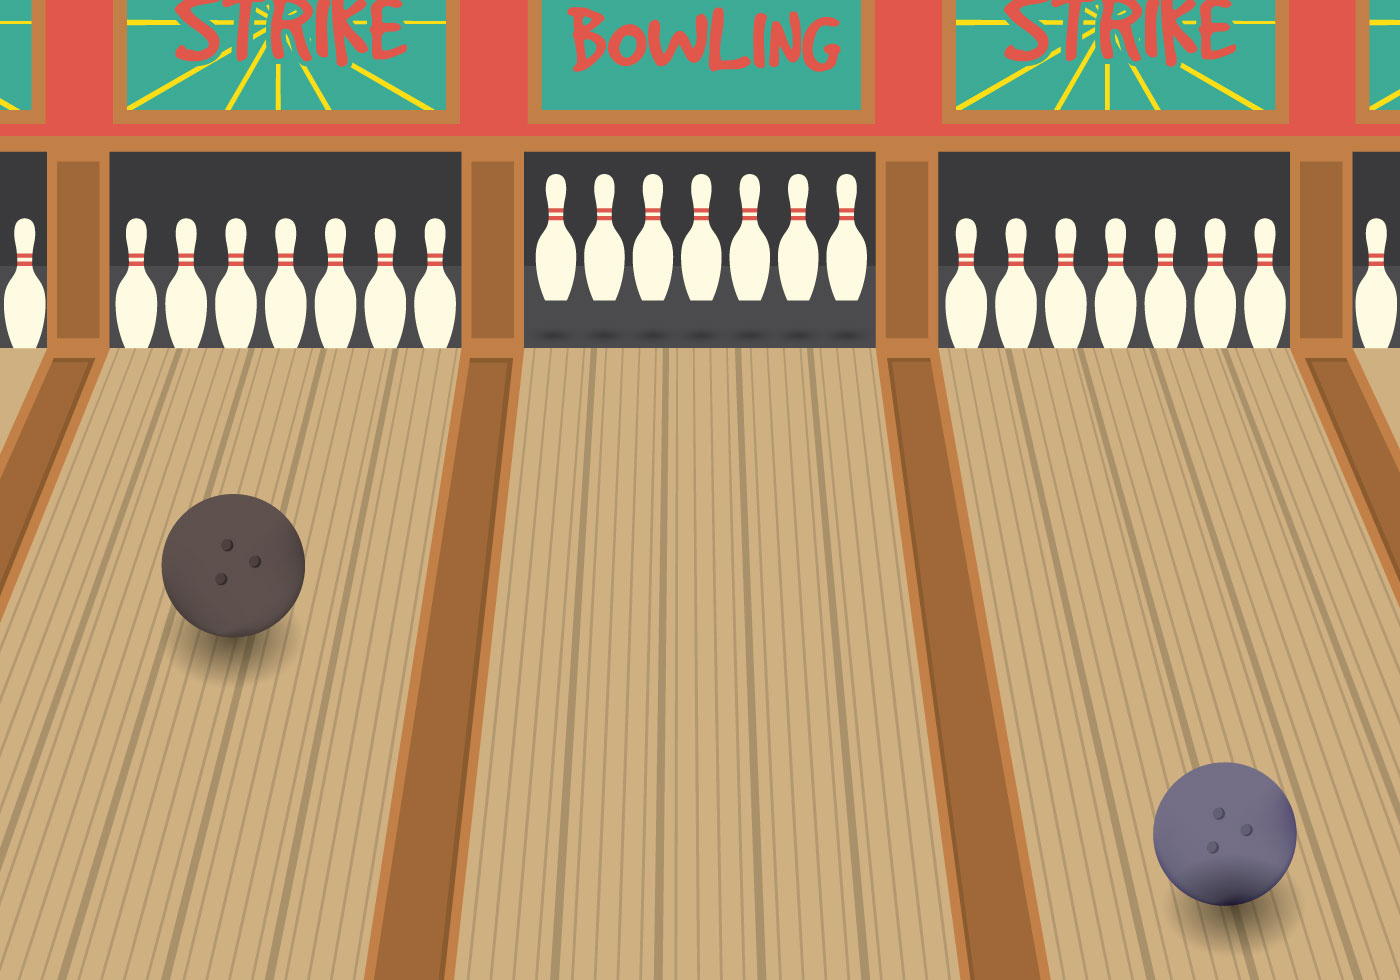 bowling alley vector download free vector art  stock bowling alley lane clipart bowling lanes clipart